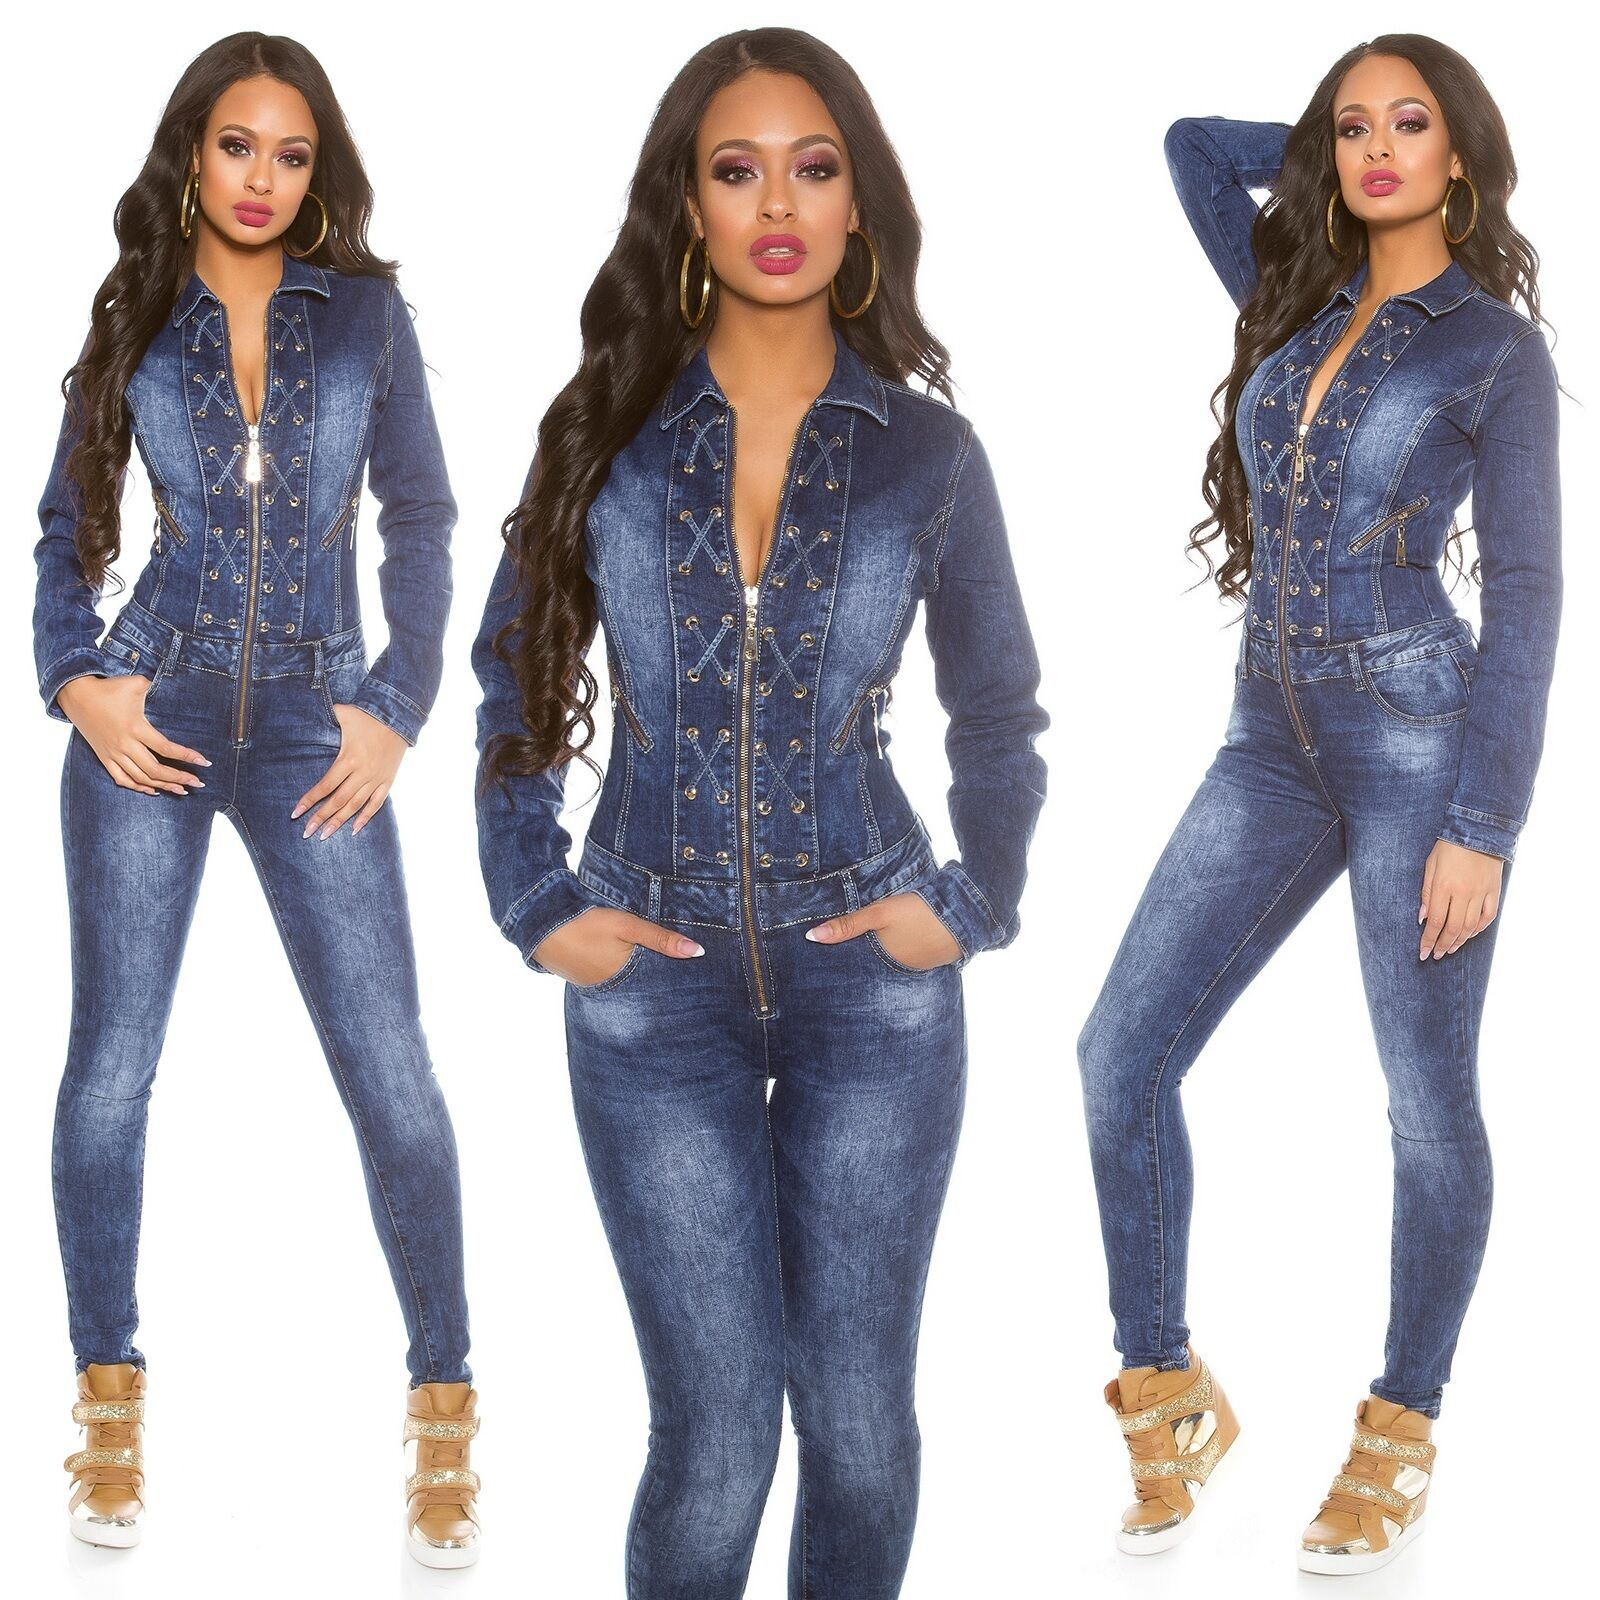 Women's Lace-Up Long Sleeve Denim Jeans Jumpsuit Overall ...